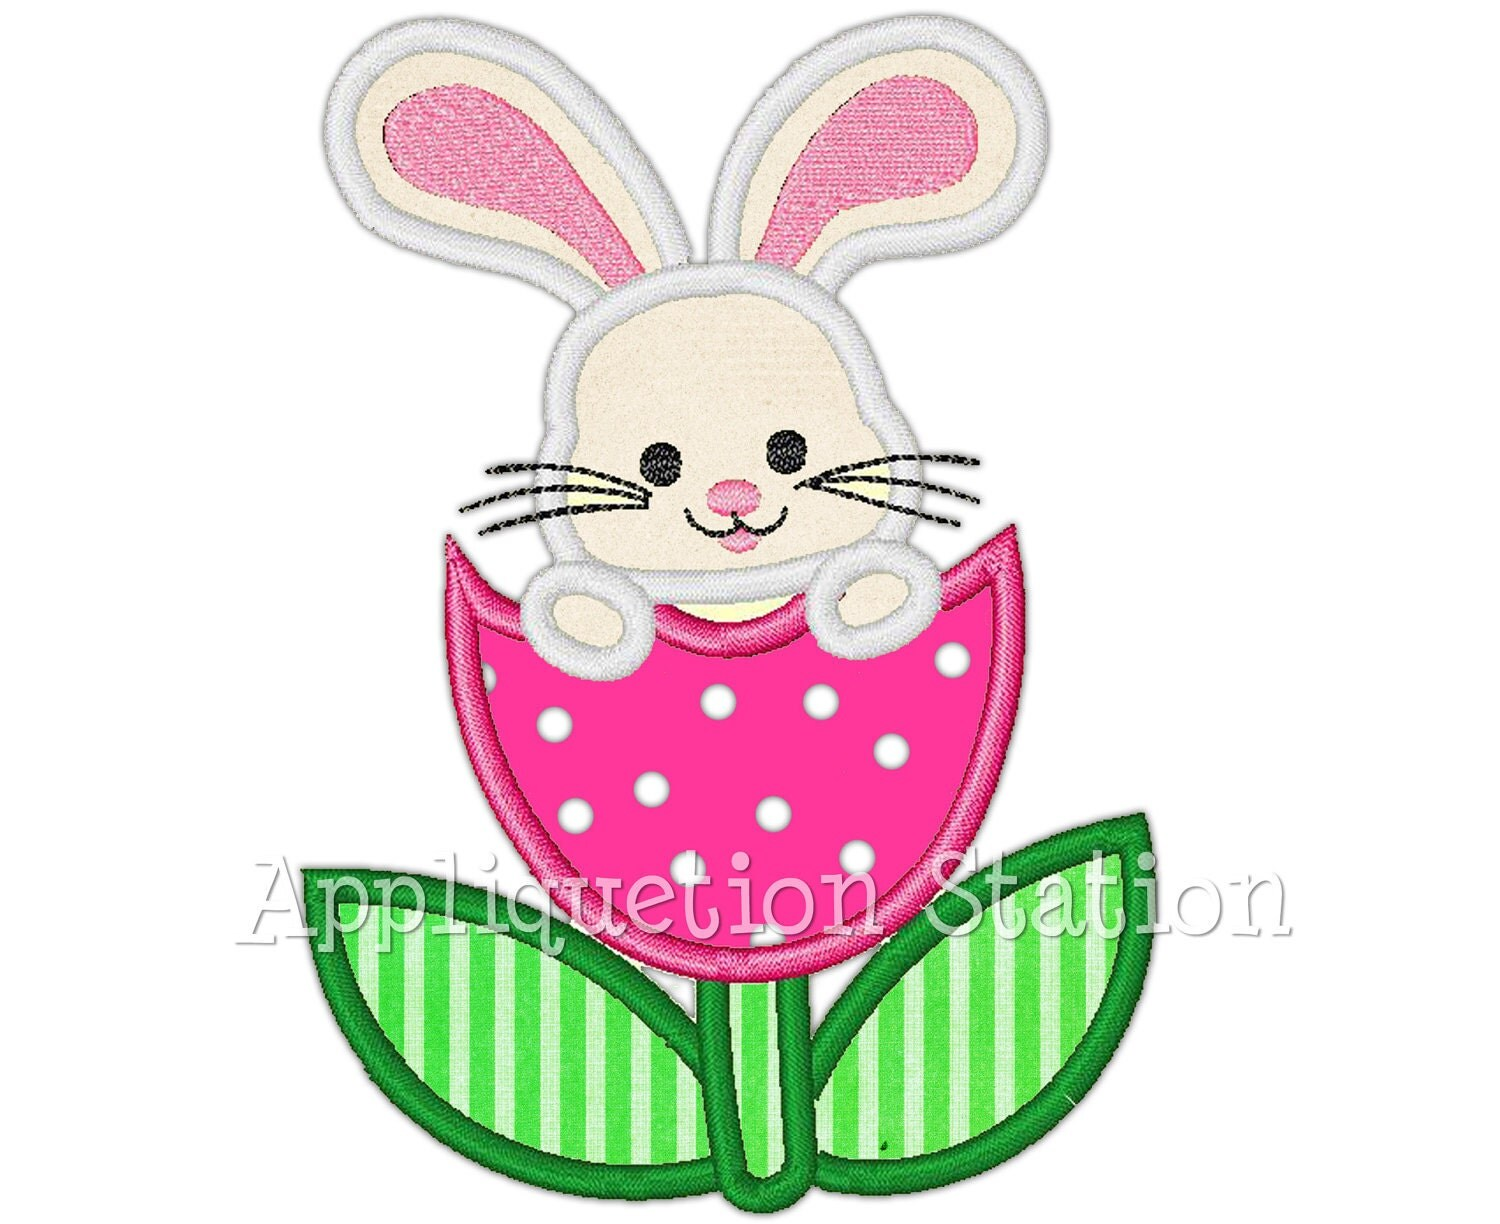 Easter bunny tulip flower applique machine embroidery design